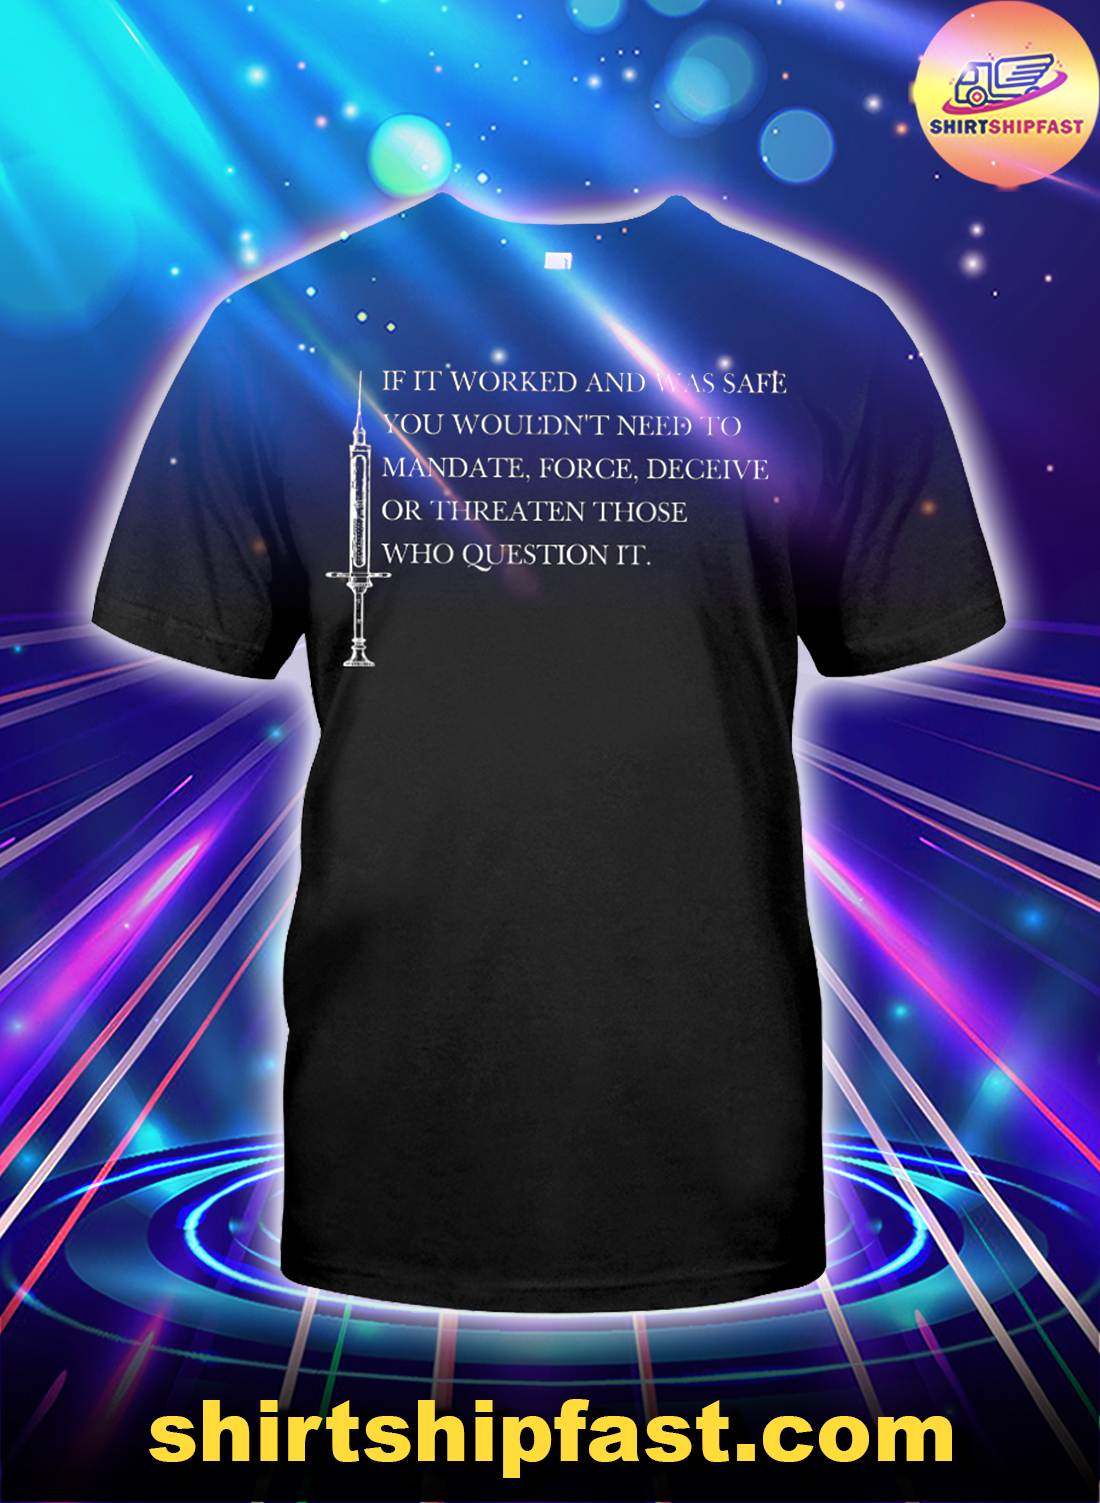 If it worked and was safe you wouldn't need to mandate shirt